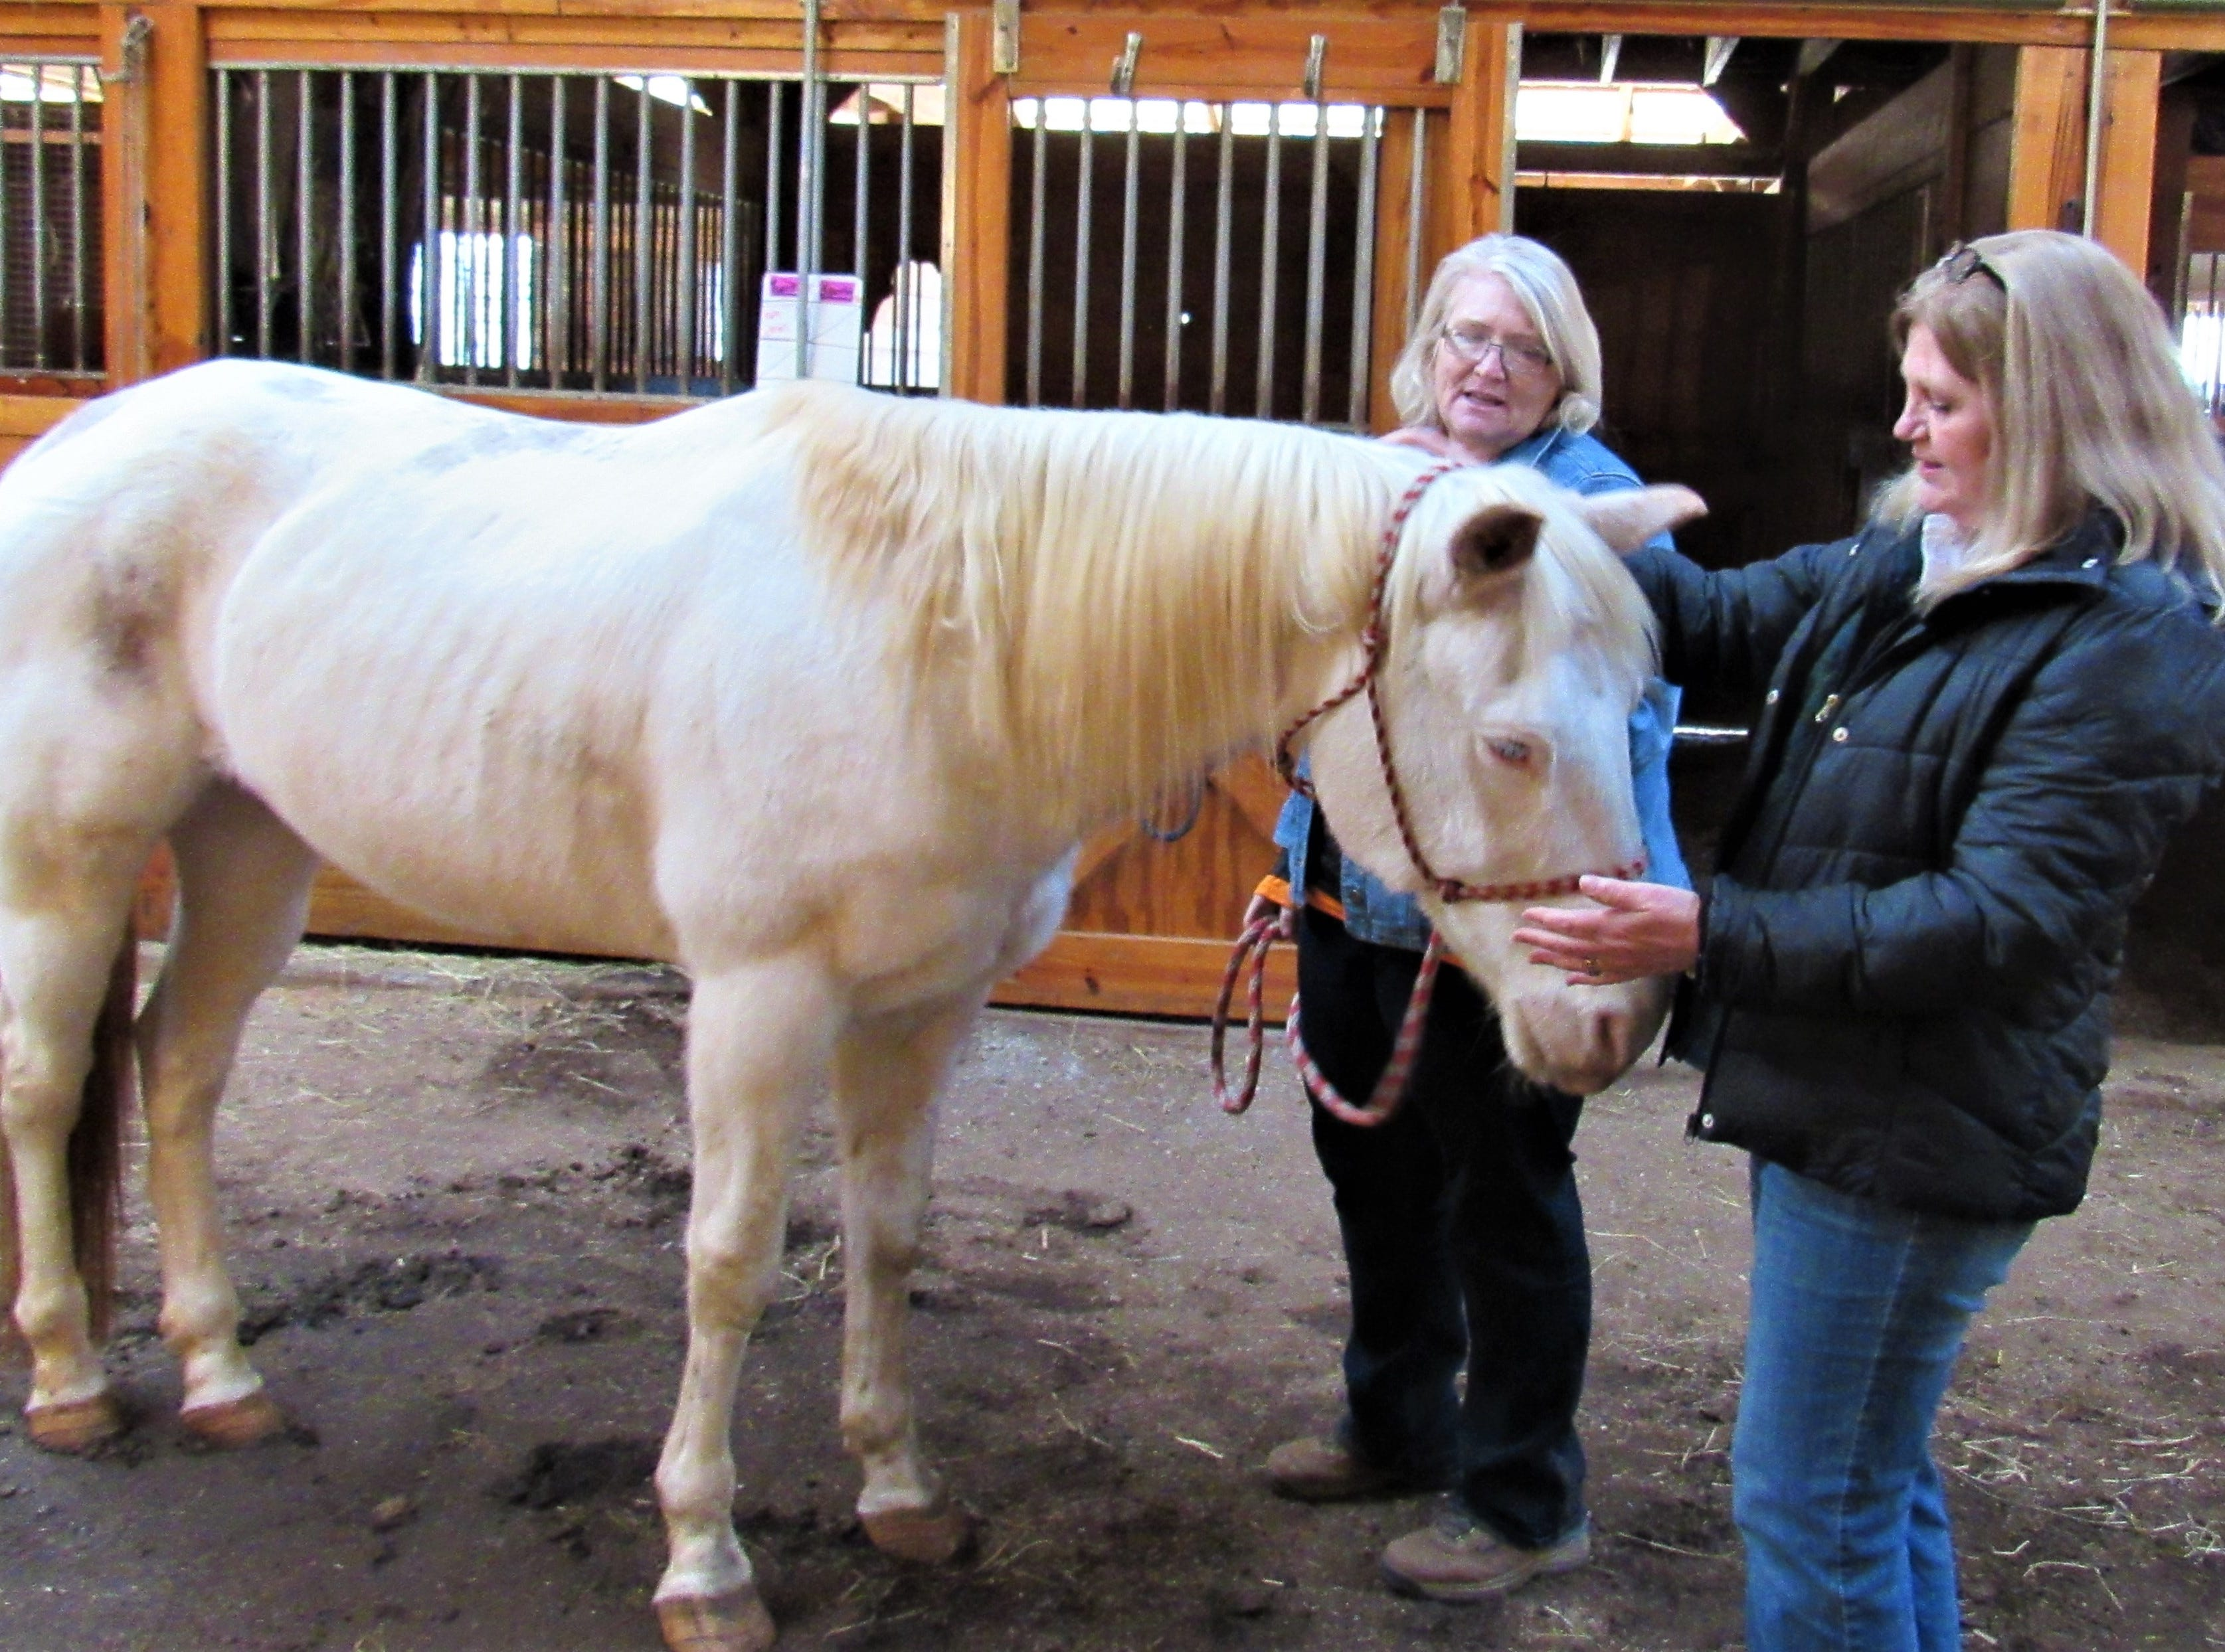 Equine manager Jocelyn Smith and executive director Tina McConnell check on Reign; he was seized by law enforcement during a raid. Because of throat scarring, he consumes only a liquid diet for now.